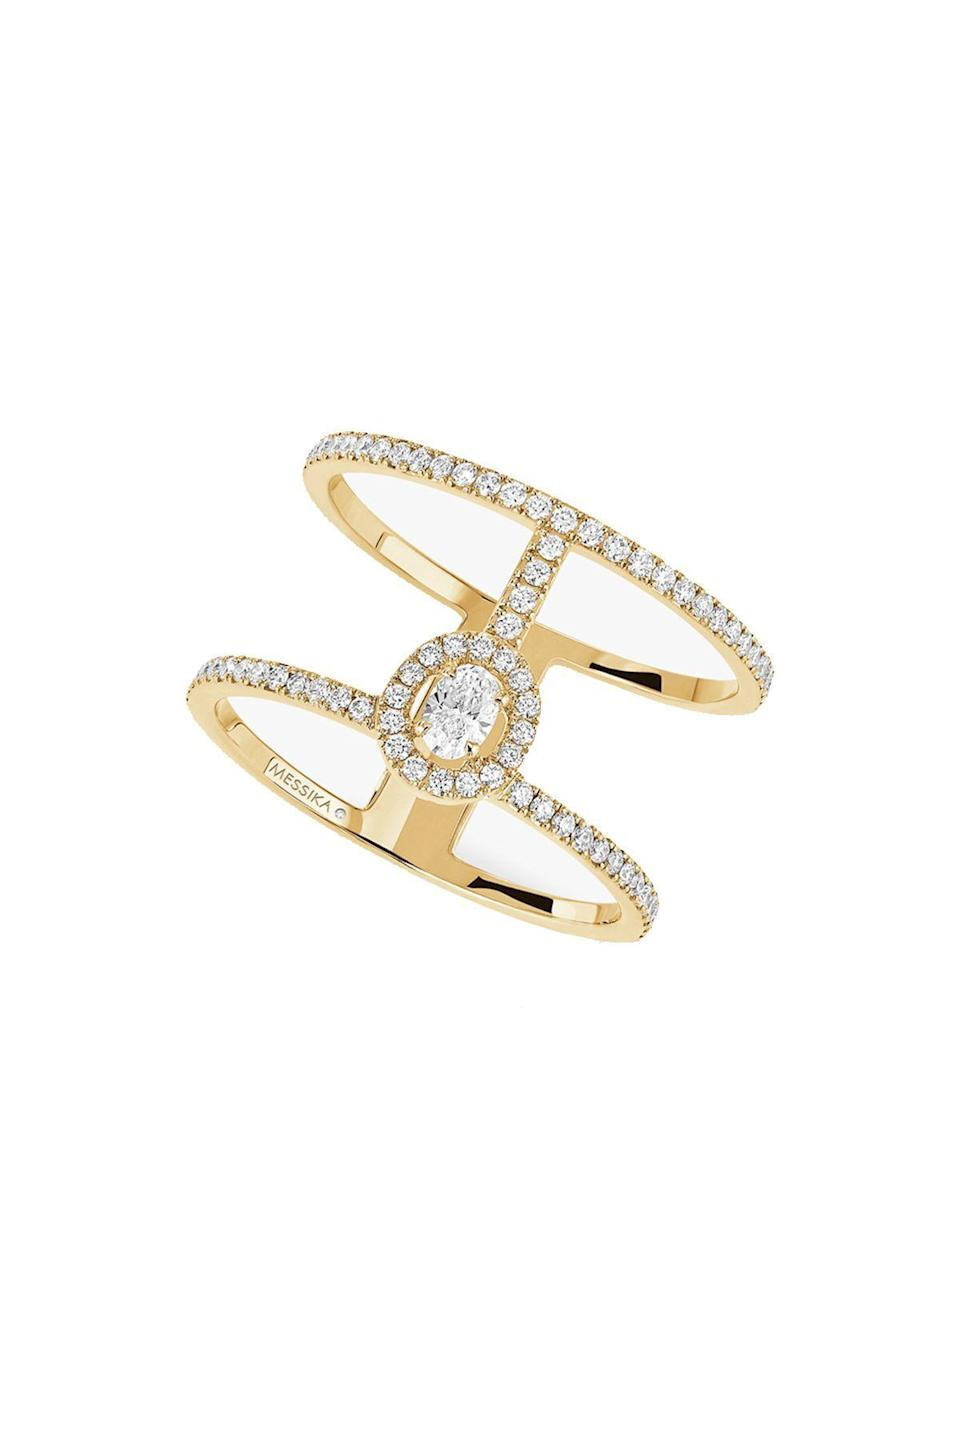 """<p><strong>Messika</strong></p><p>messika.com</p><p><strong>$3900.00</strong></p><p><a href=""""https://www.messika.com/us_en/yellow-gold-pave-diamond-ring-2-rows-glamazone-05237-yg"""" rel=""""nofollow noopener"""" target=""""_blank"""" data-ylk=""""slk:Shop Now"""" class=""""link rapid-noclick-resp"""">Shop Now</a></p><p>Don't wait for a wedding band to start stacking. The openwork structure of this gold and pave diamond ring is delicate, but makes a huge impact.</p>"""